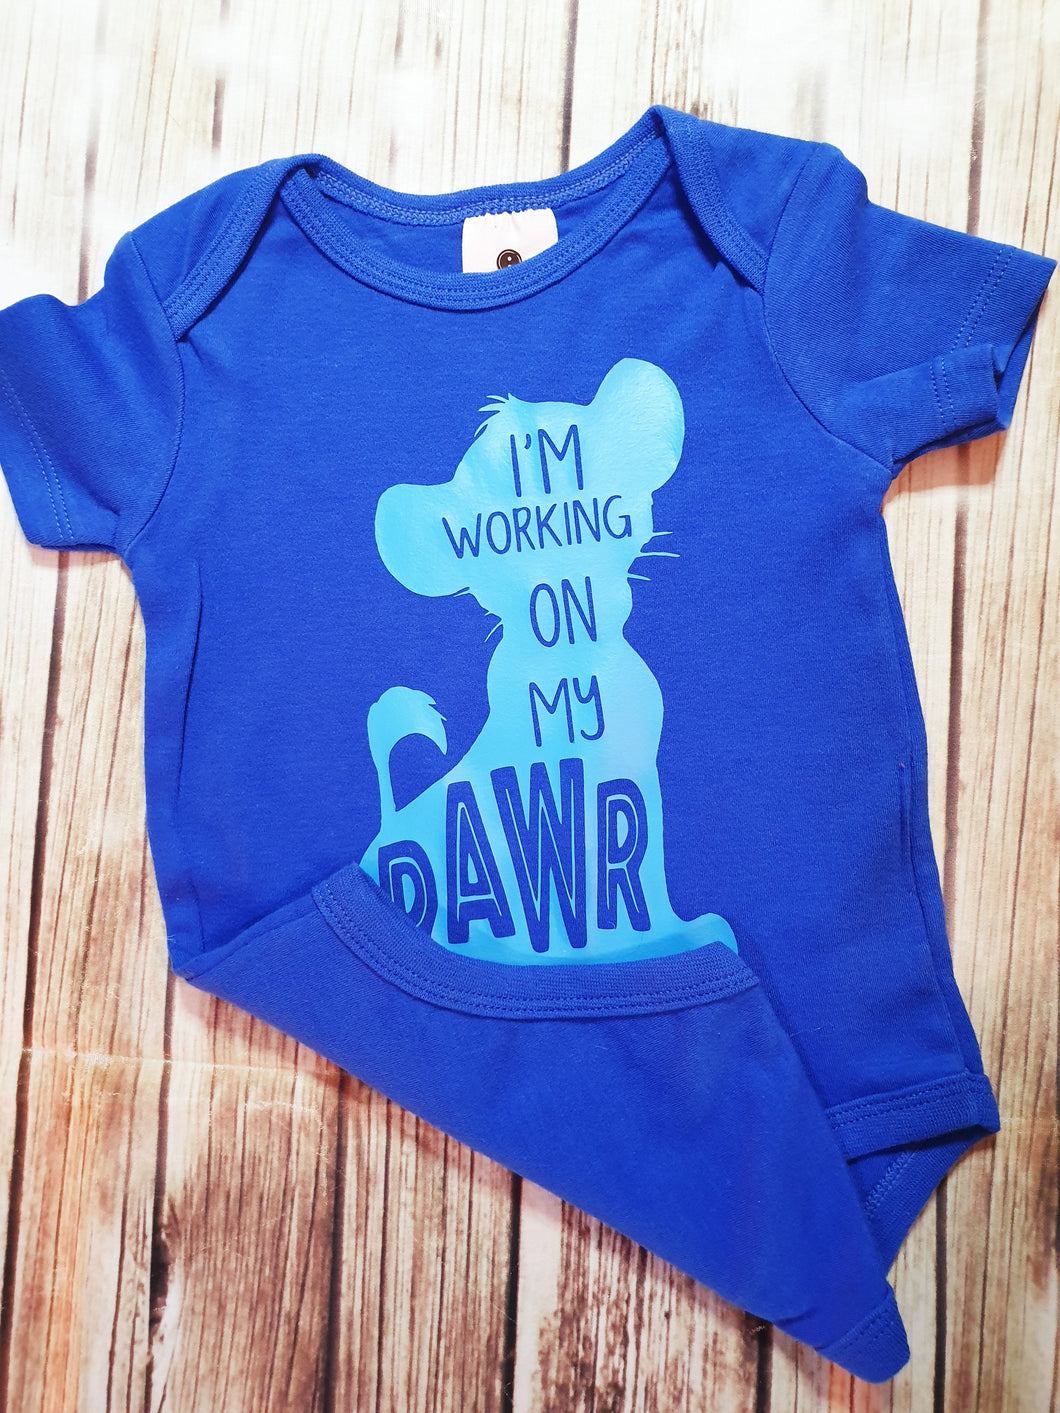 Boy's RAWR onsie - Pitter Patter Baby Boutique